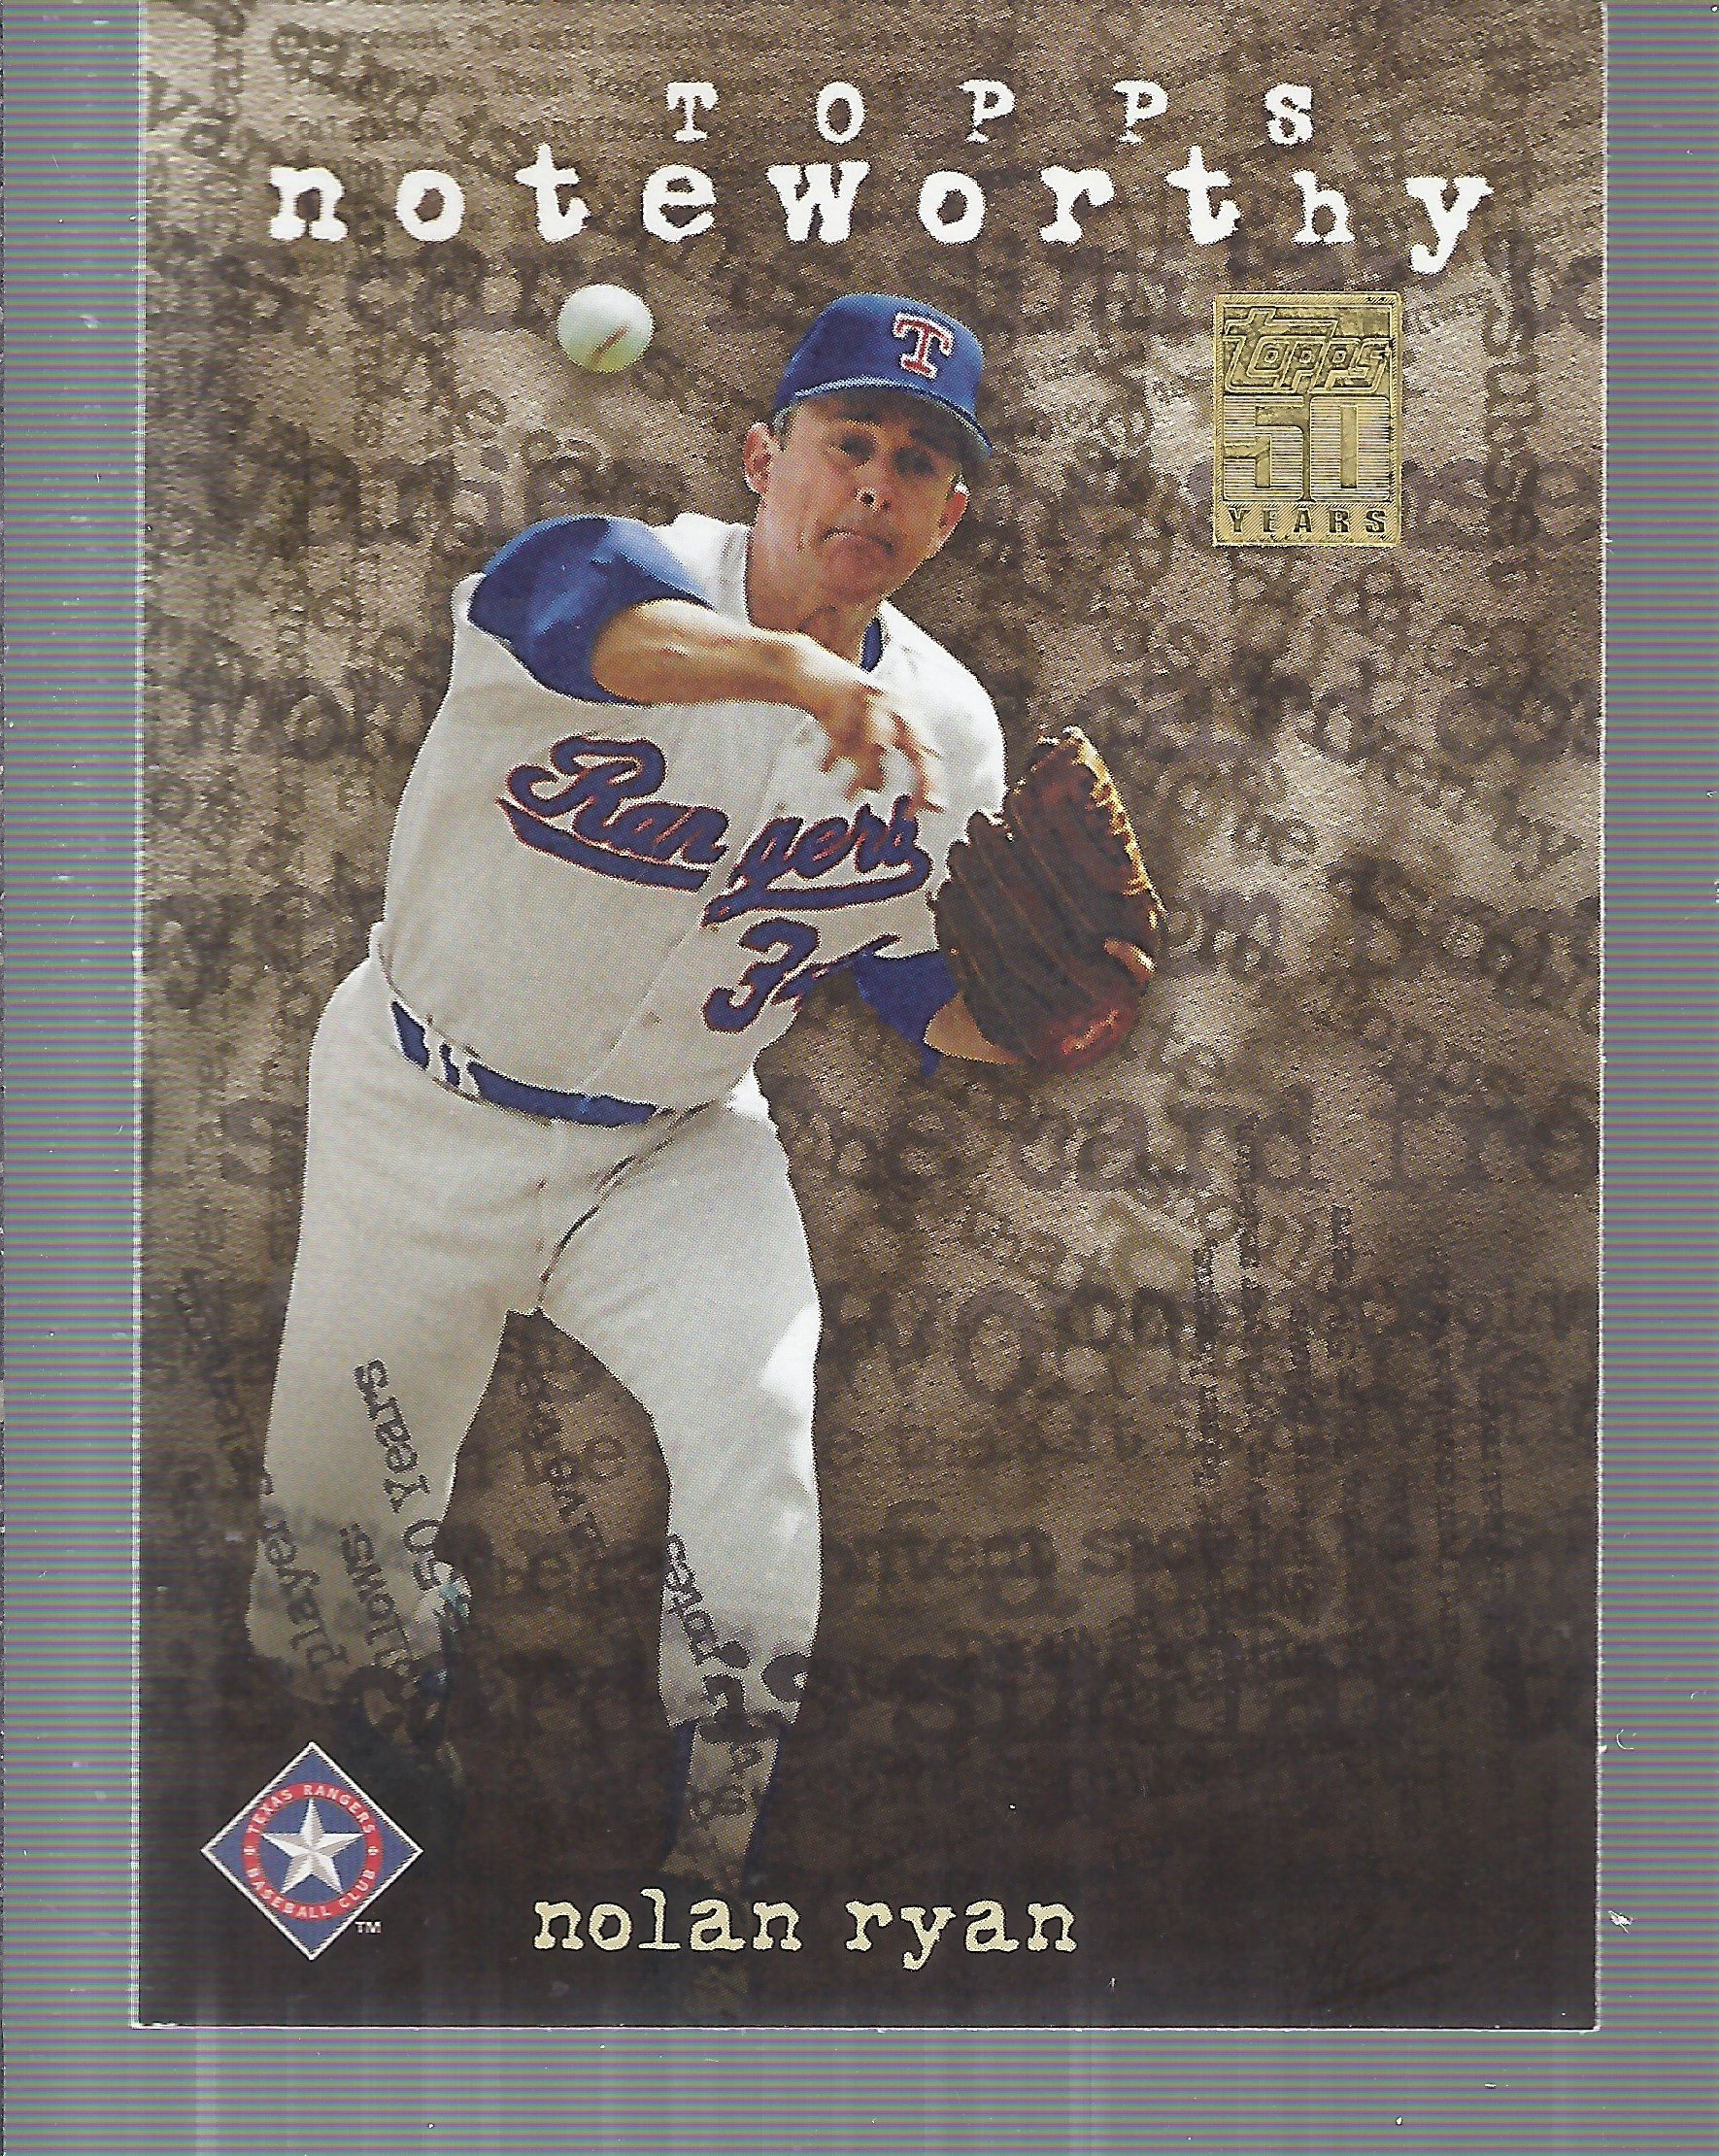 2001 Topps Noteworthy #TN32 Nolan Ryan